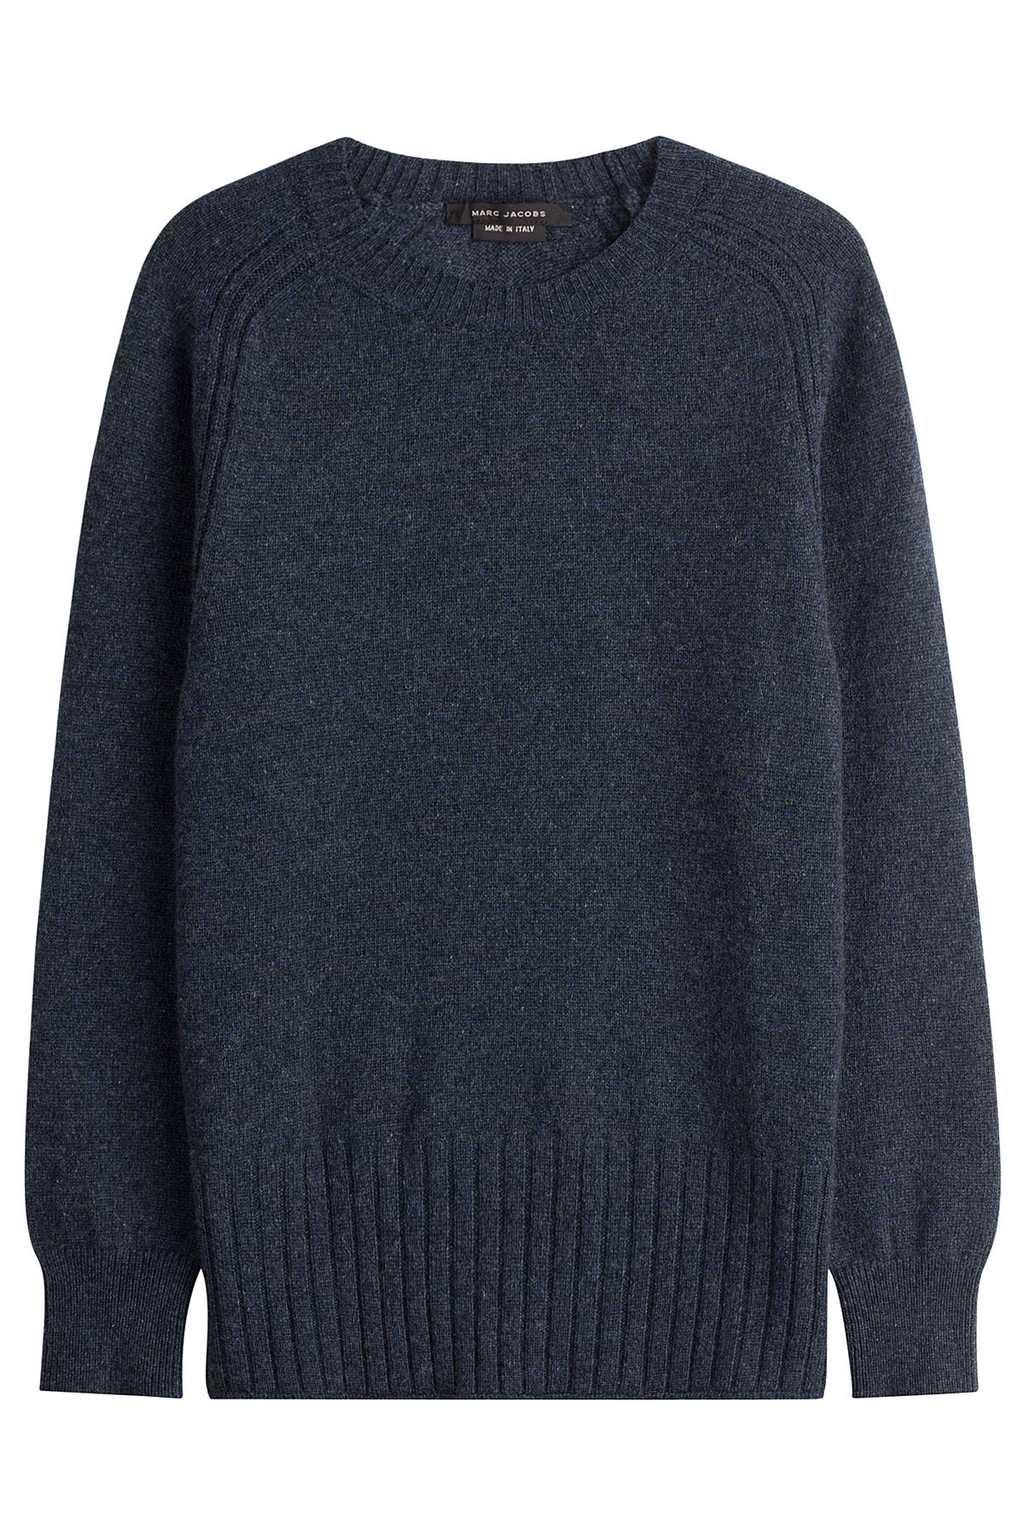 Cashmere Pullover - pattern: plain; style: standard; predominant colour: navy; occasions: casual; length: standard; fit: slim fit; neckline: crew; fibres: cashmere - 100%; sleeve length: long sleeve; sleeve style: standard; texture group: knits/crochet; pattern type: knitted - fine stitch; season: s/s 2016; wardrobe: investment